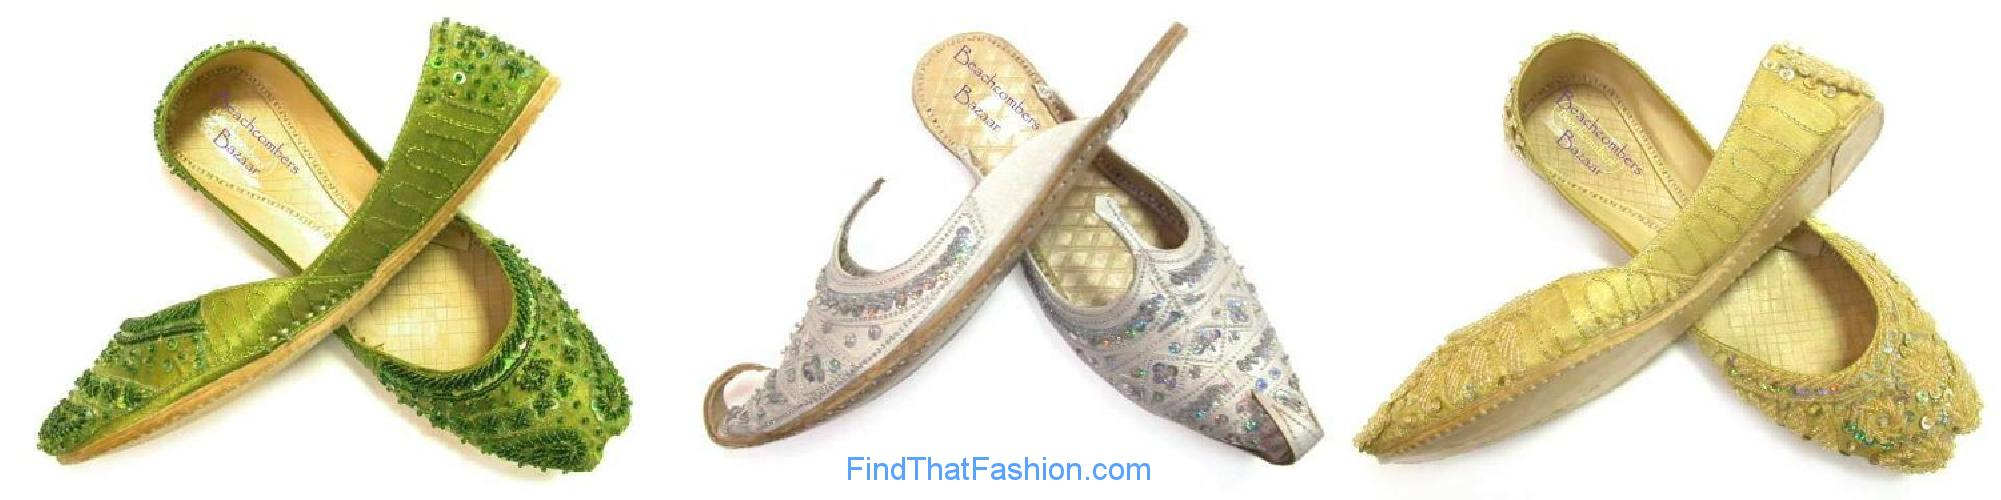 Beachcombers! Indian Wedding Shoes